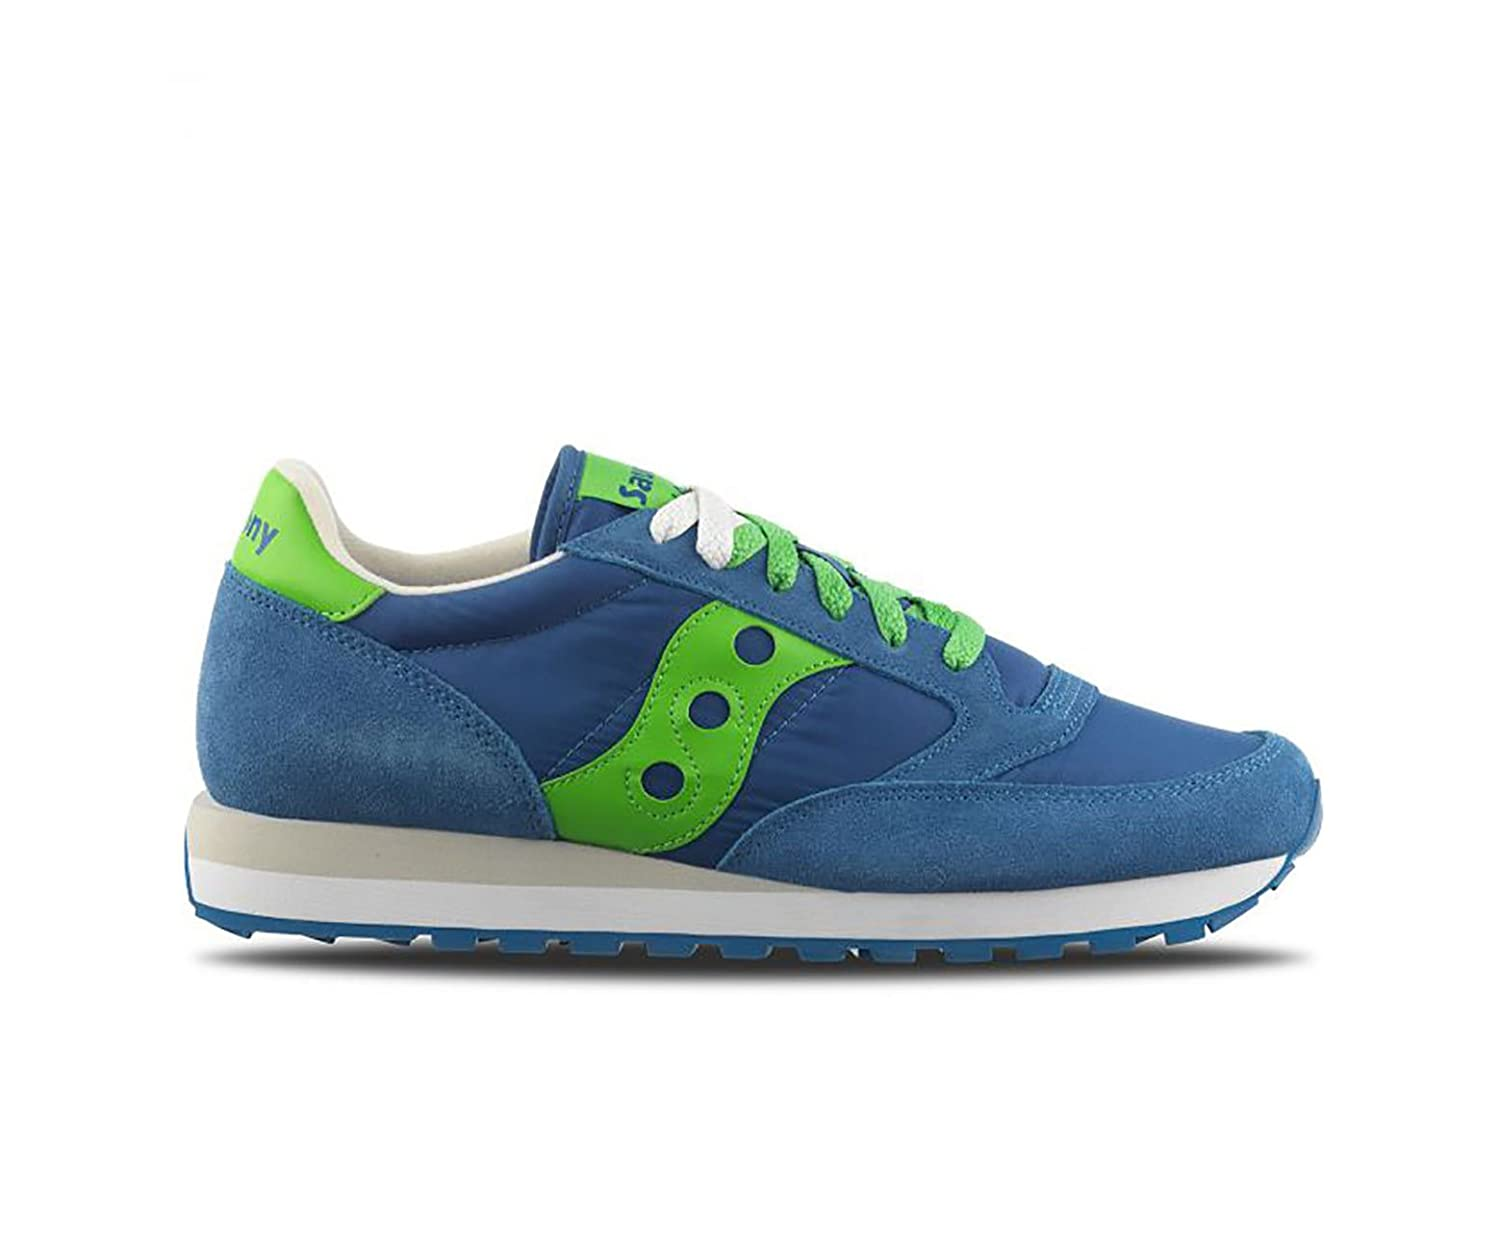 Sneakers Jazz Original Blue - Lime, Hombre. 11,5